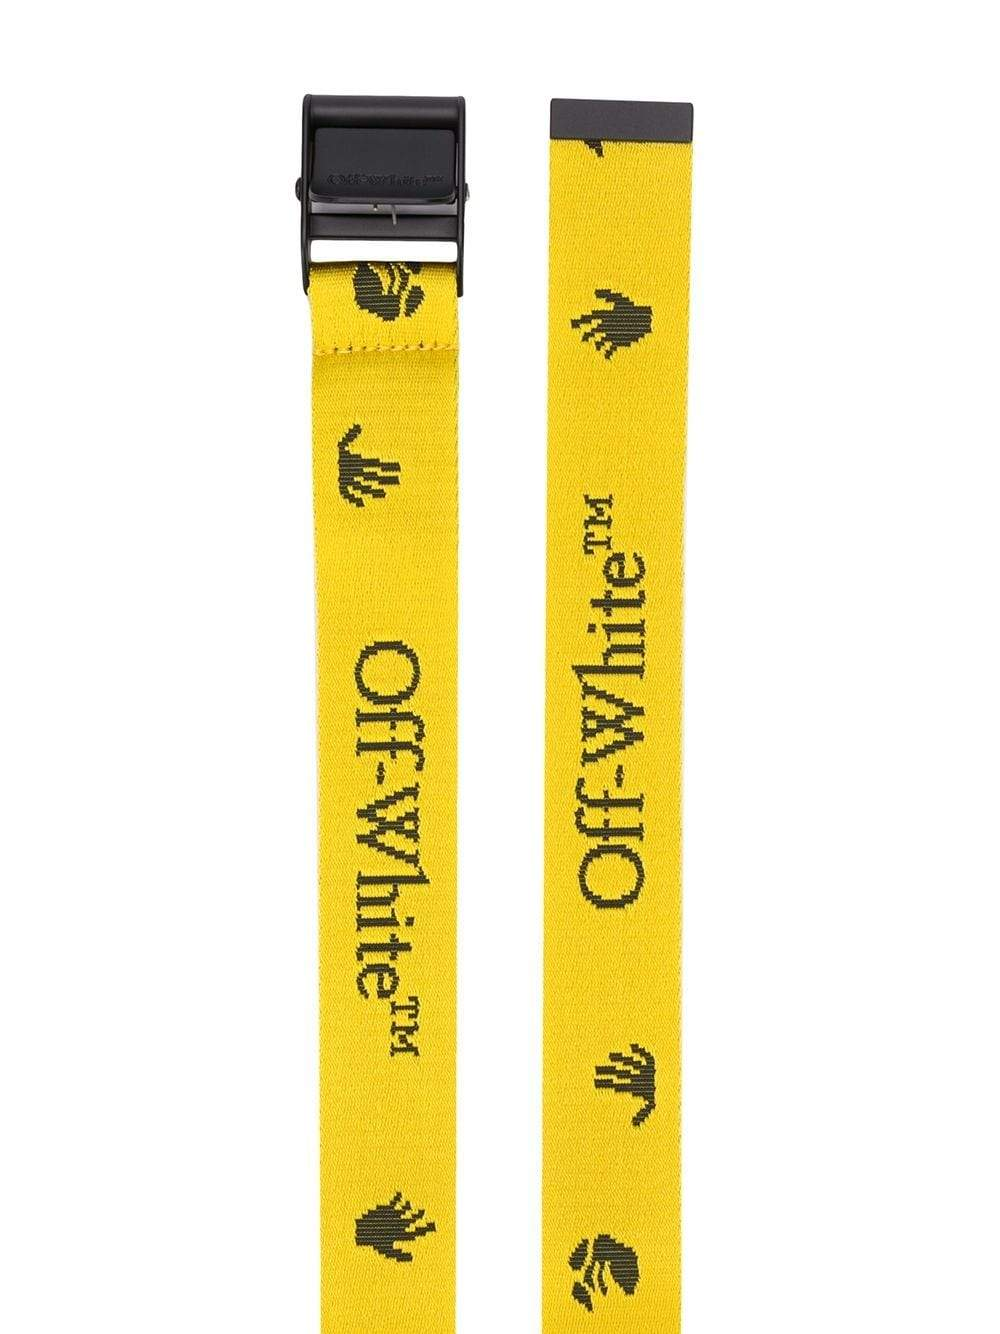 OFF-WHITE new logo industrial yellow/black - Maison De Fashion